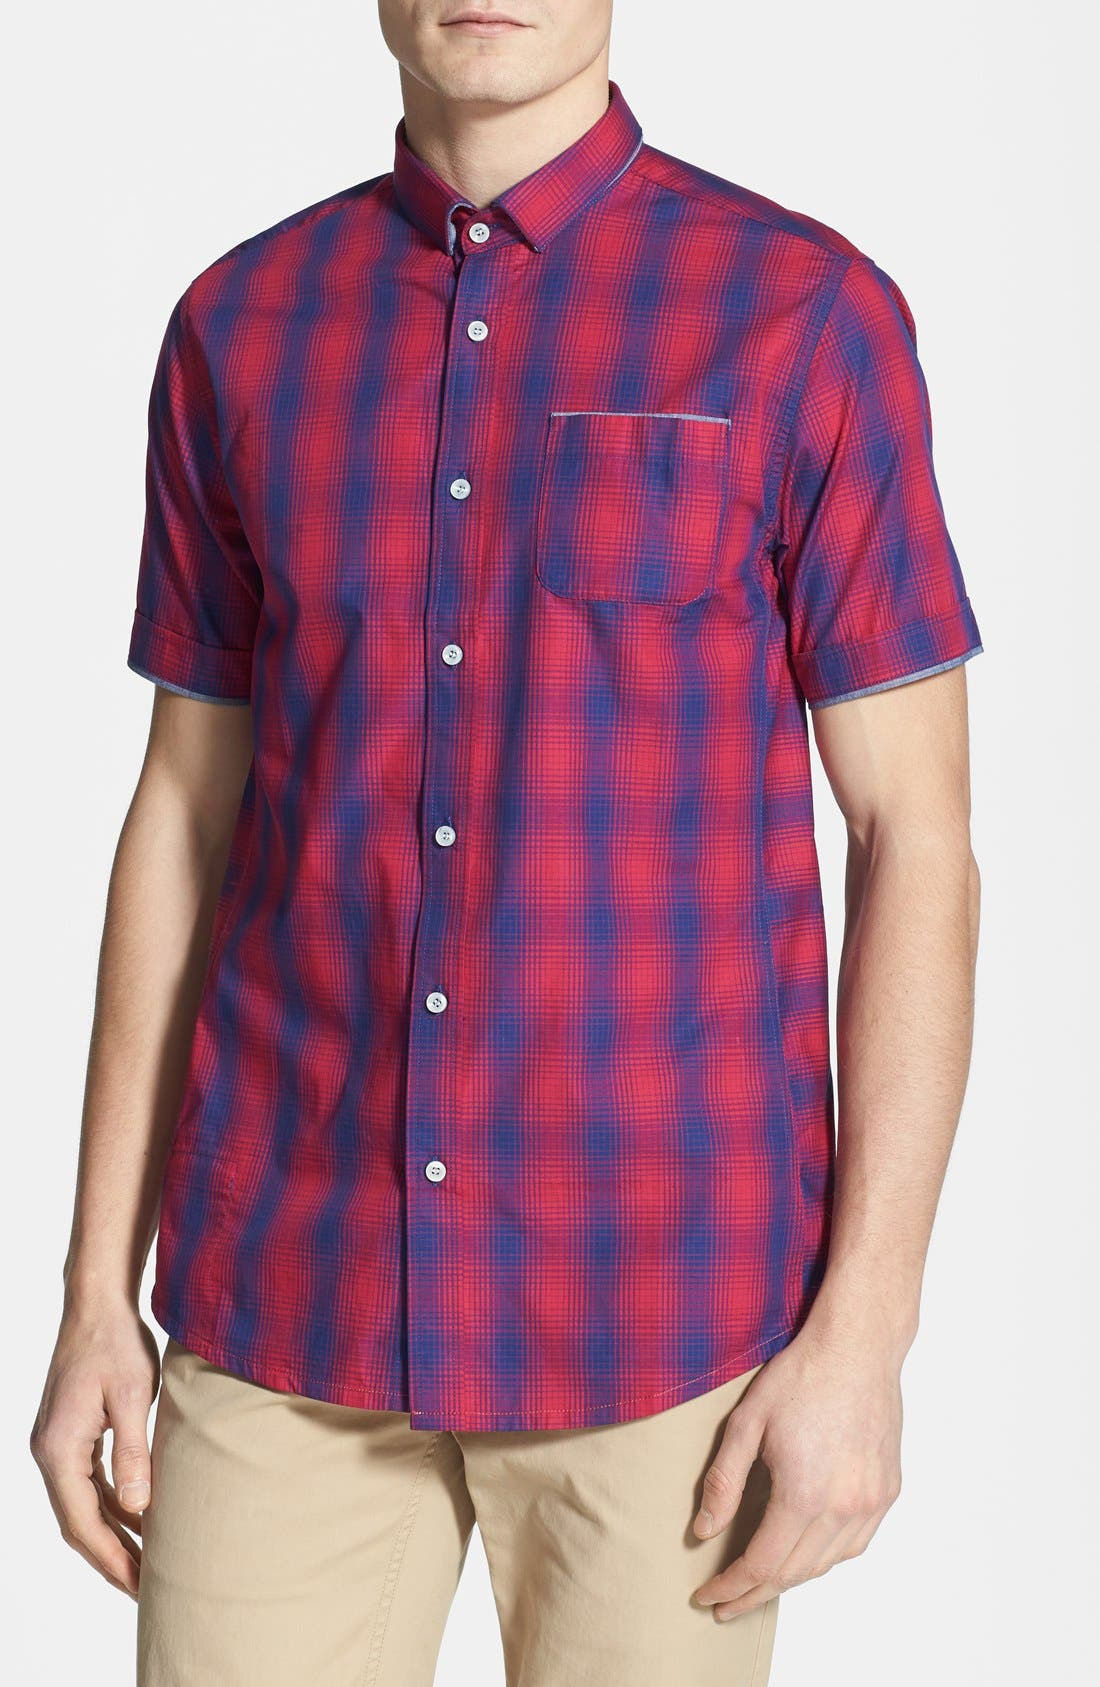 Alternate Image 1 Selected - Descendant of Thieves Ombré Short Sleeve Plaid Shirt